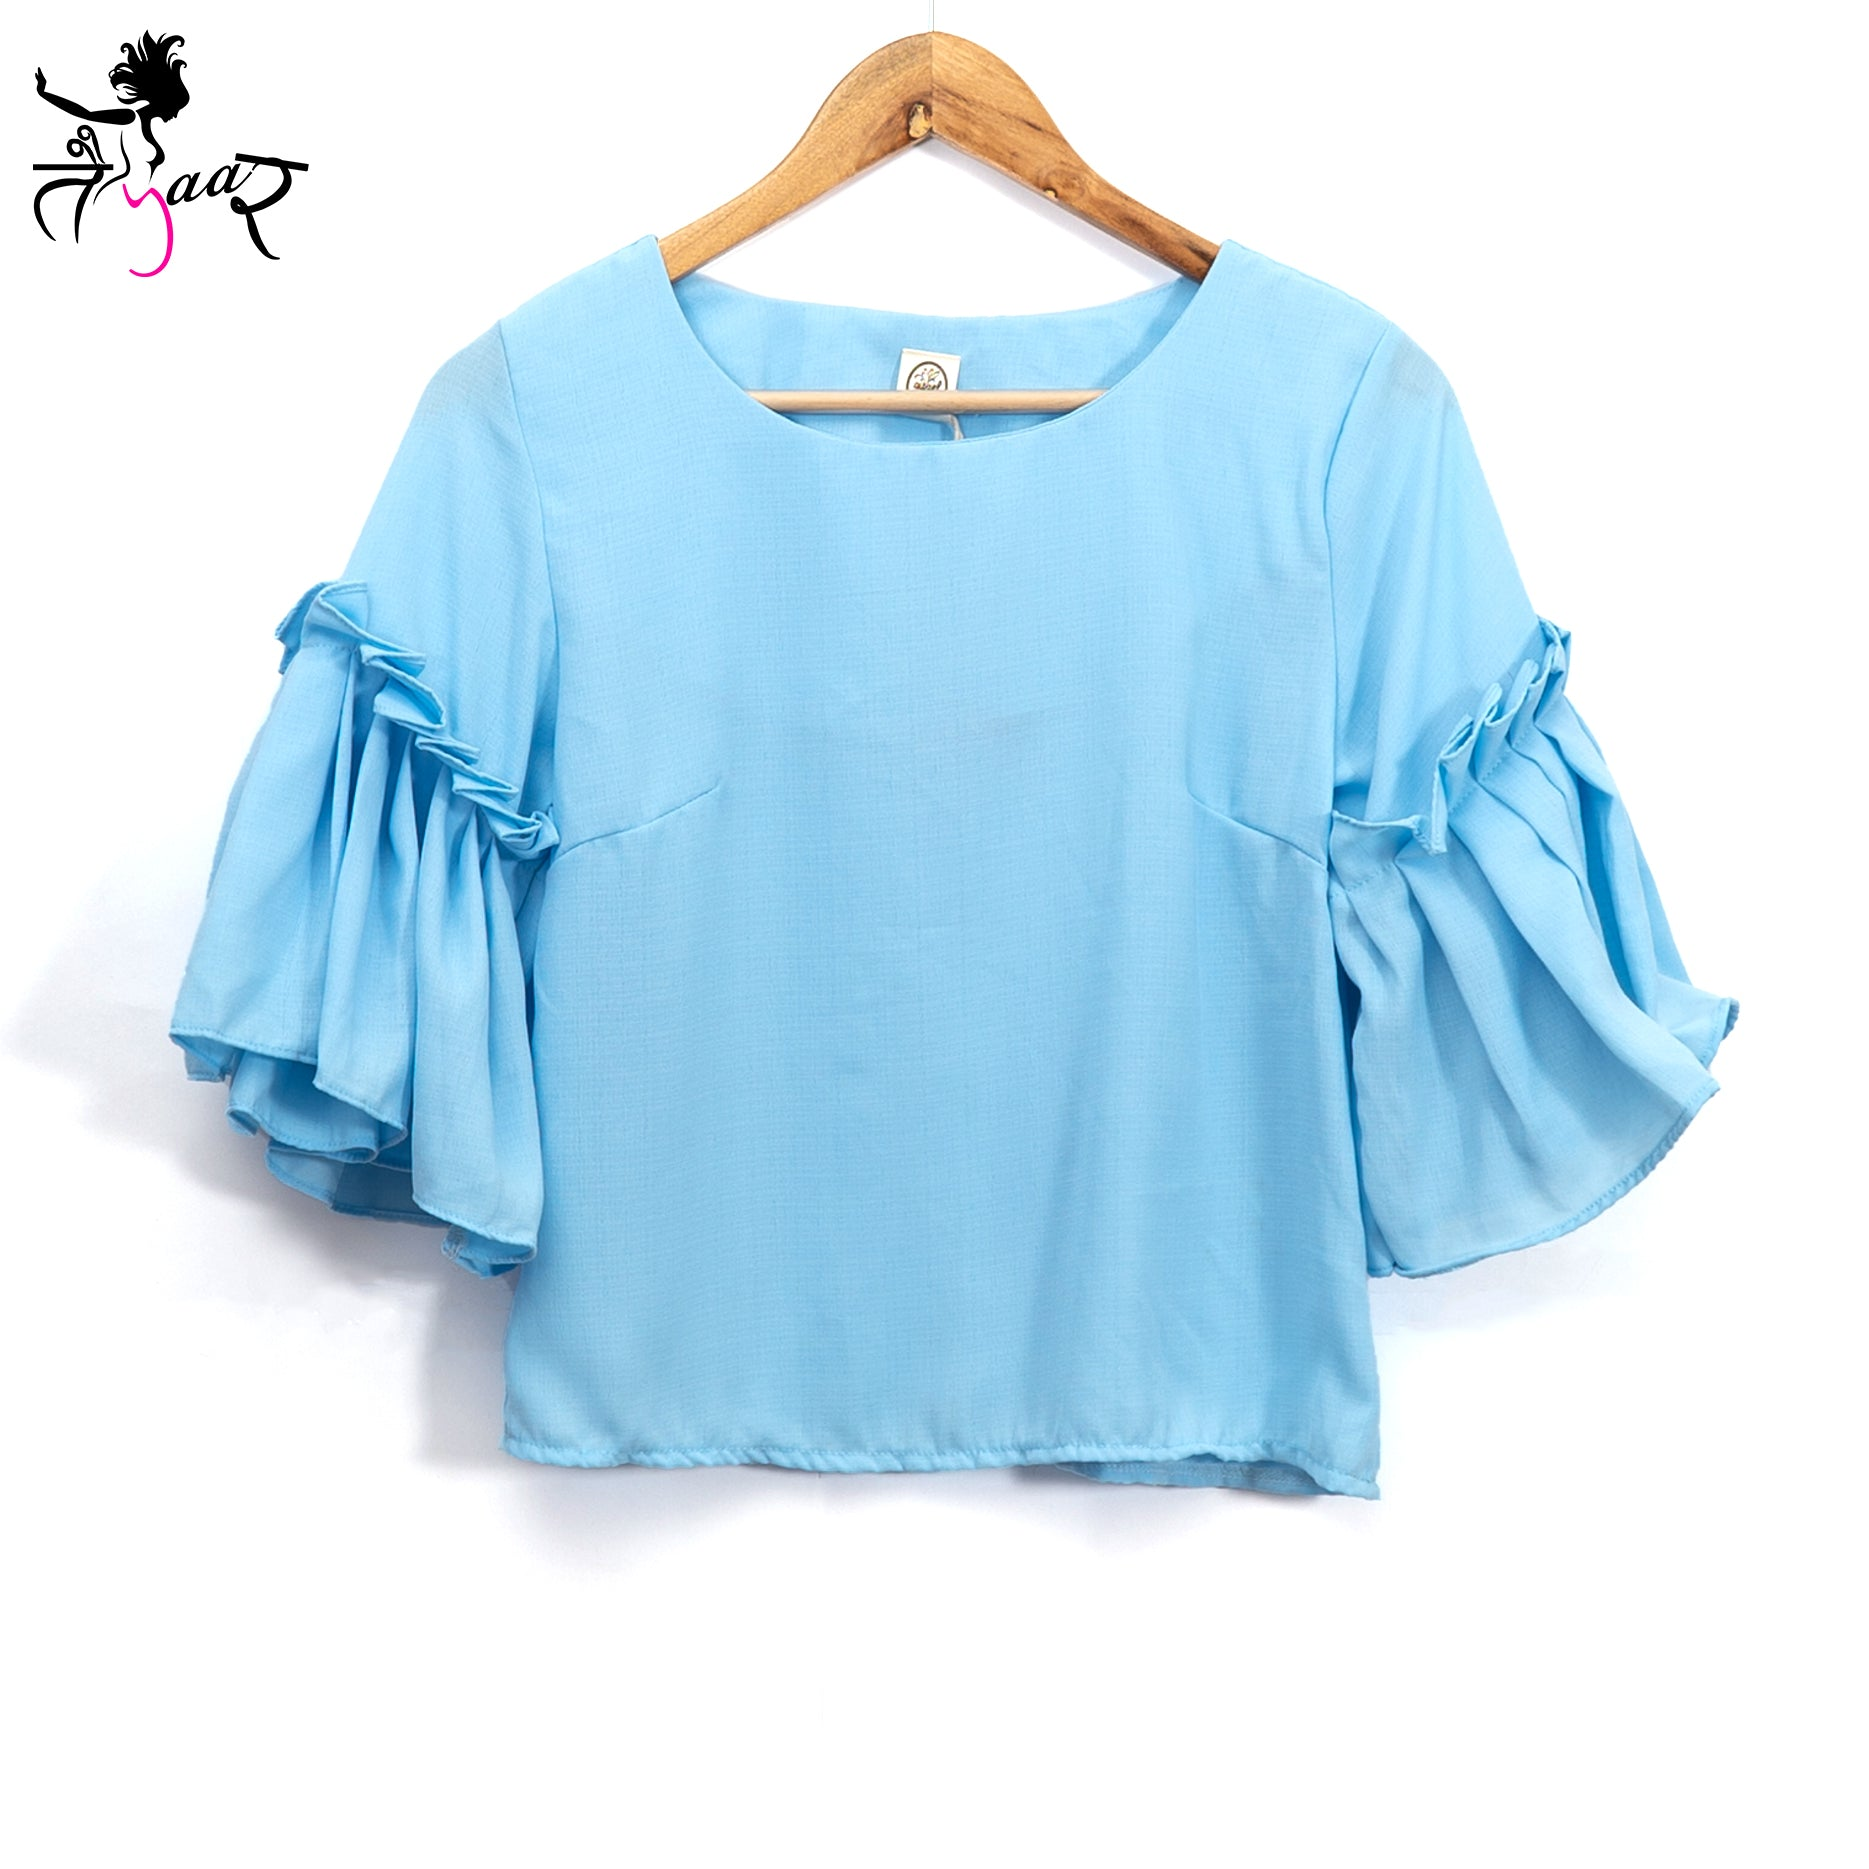 Frill Sleeves Party Wear Tops